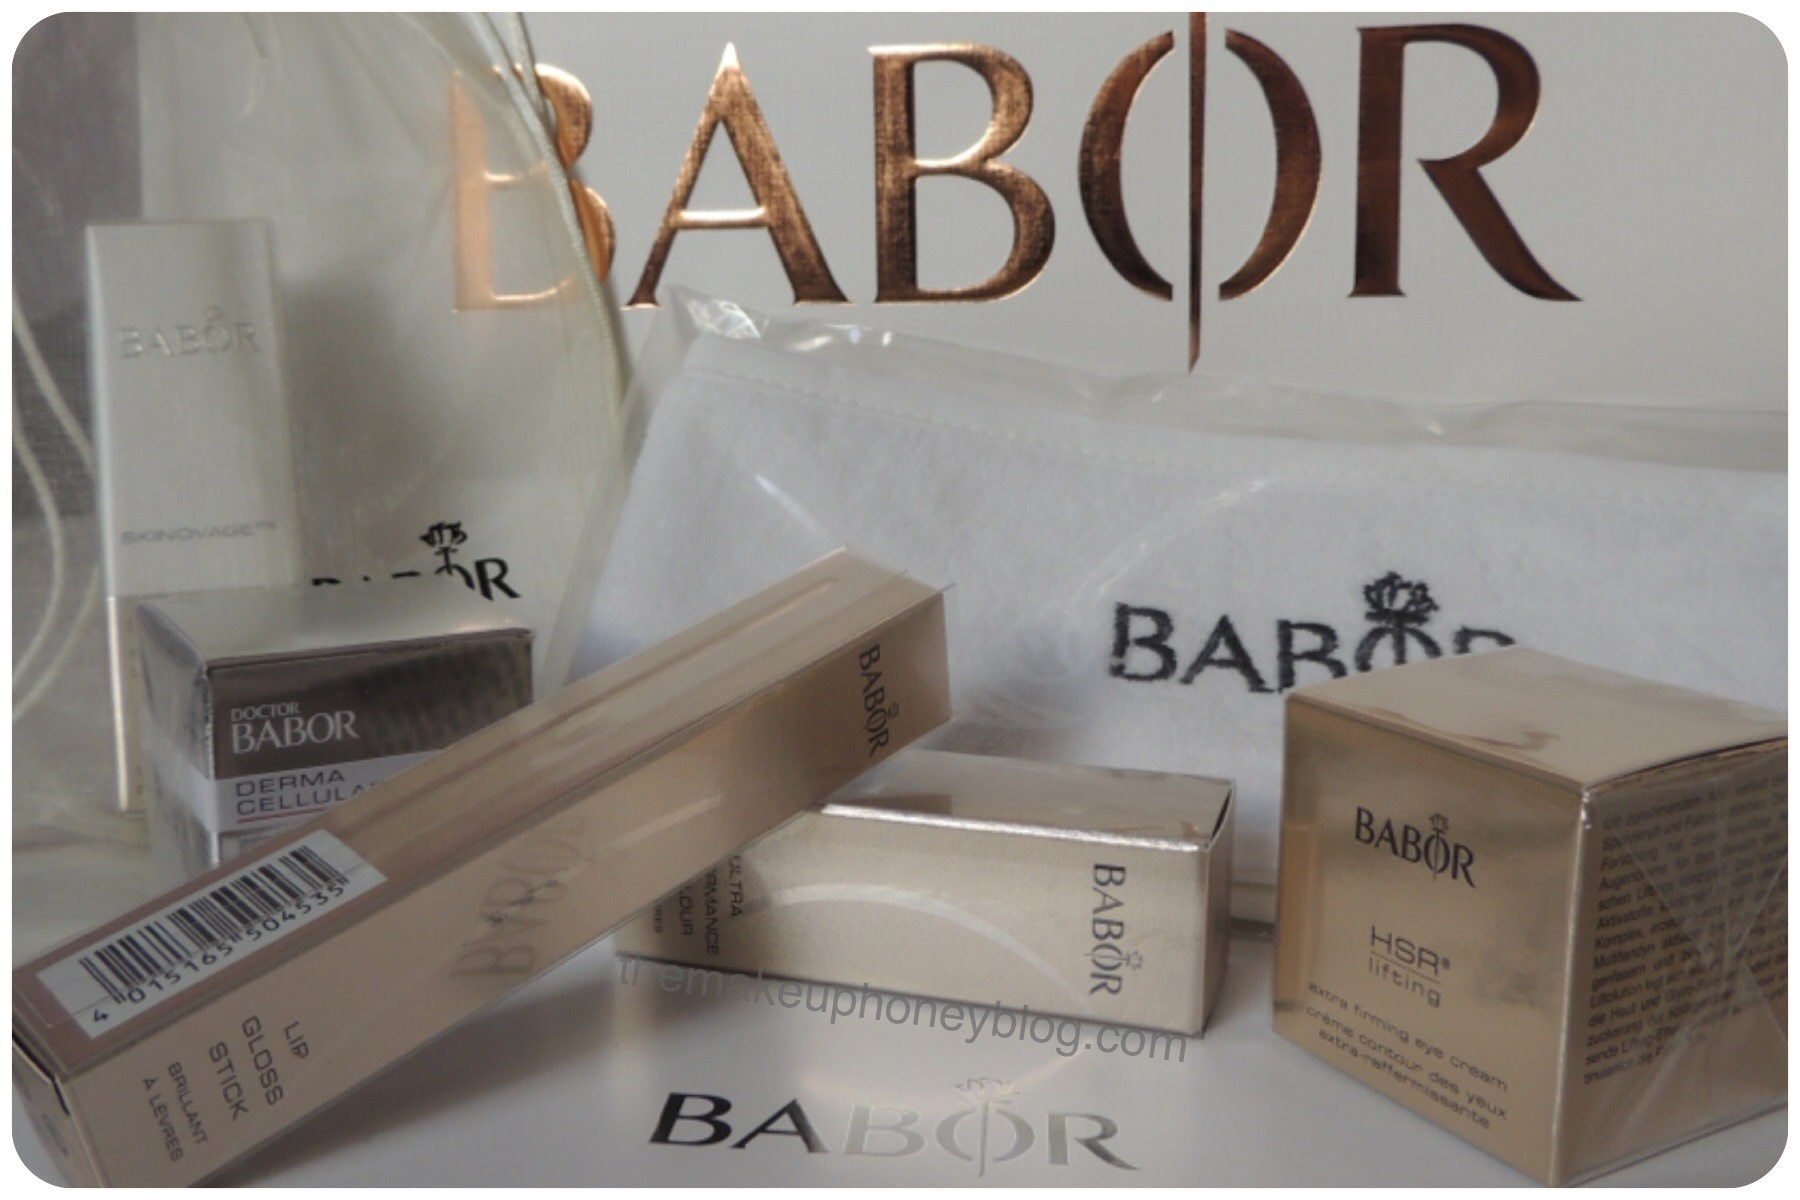 ... samples and other such nonsense that we never use because the quantity is minute. I have to say I was really impressed with the Babor goodie bag.